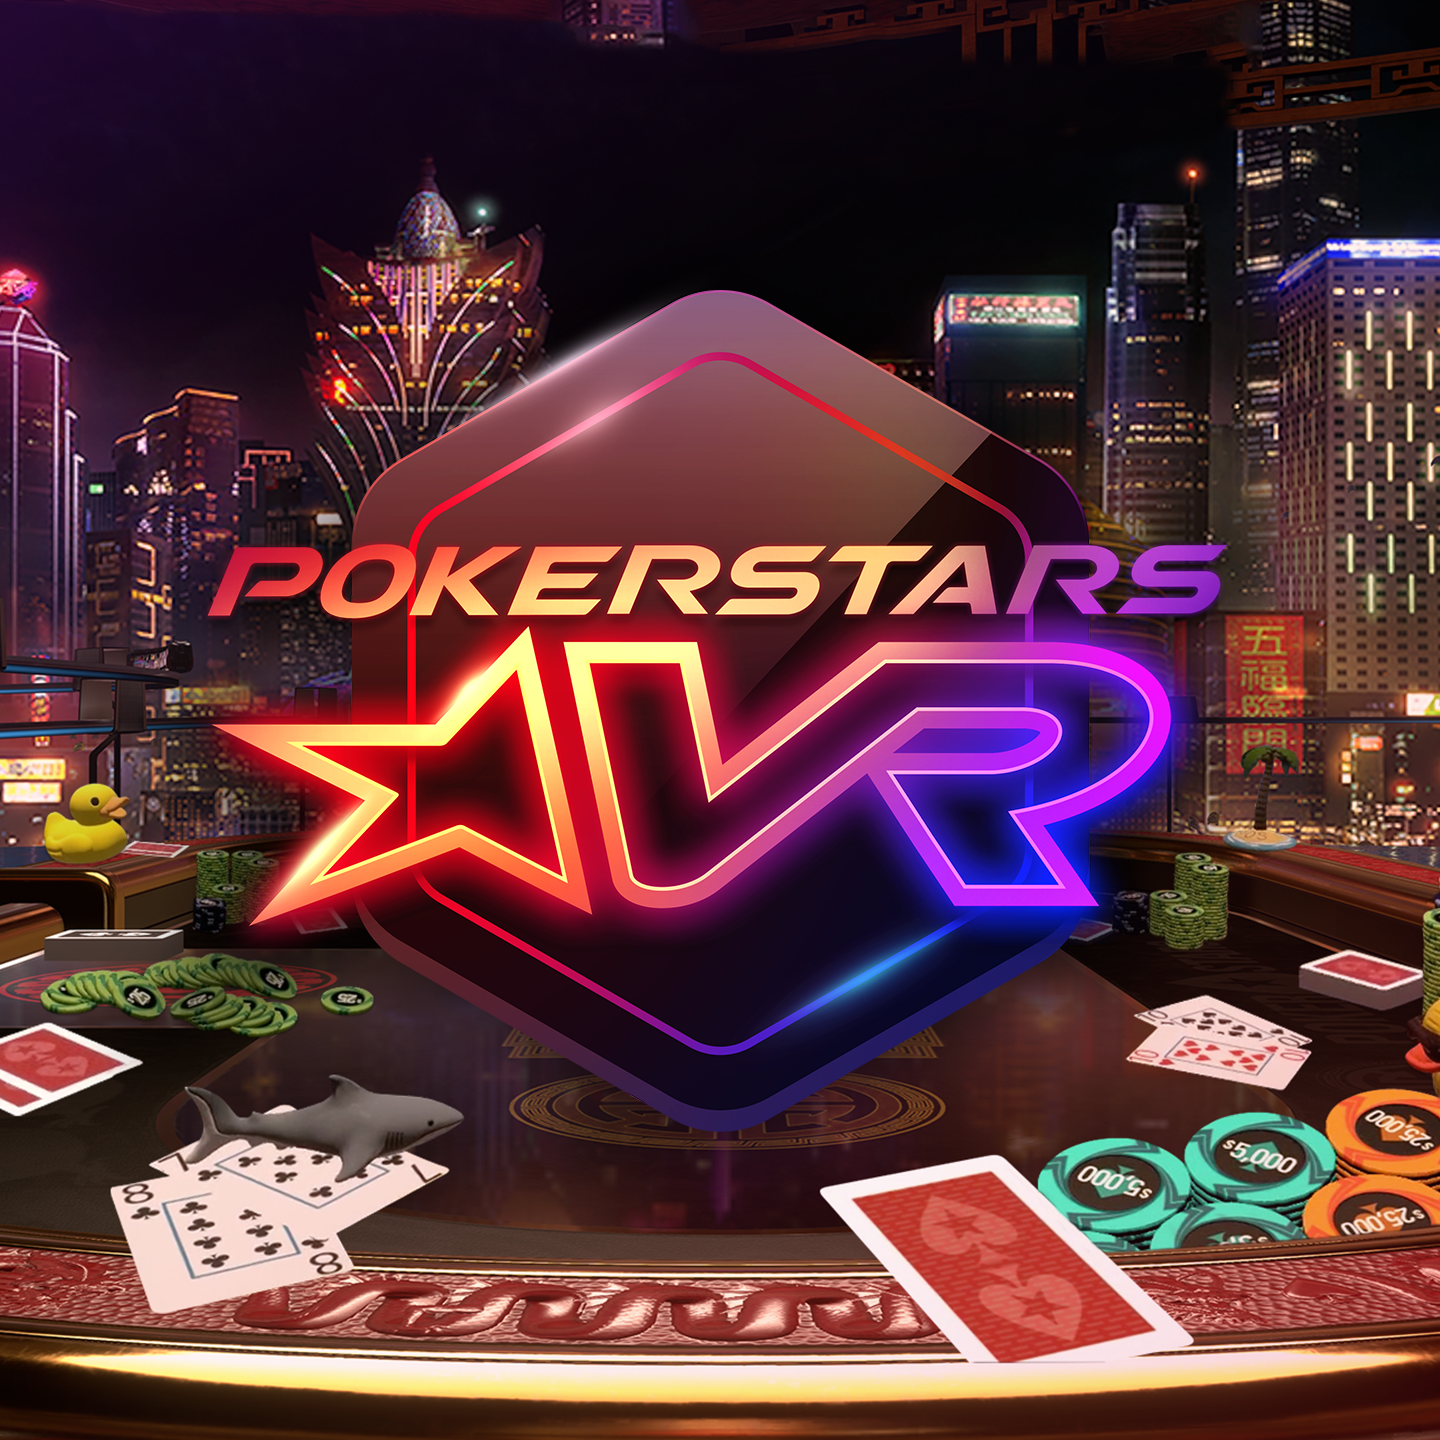 PokerStars VR, a virtual reality game of Texas Hold'em, is now available to consumers worldwide. The full public launch on Thursday follows a closed beta…